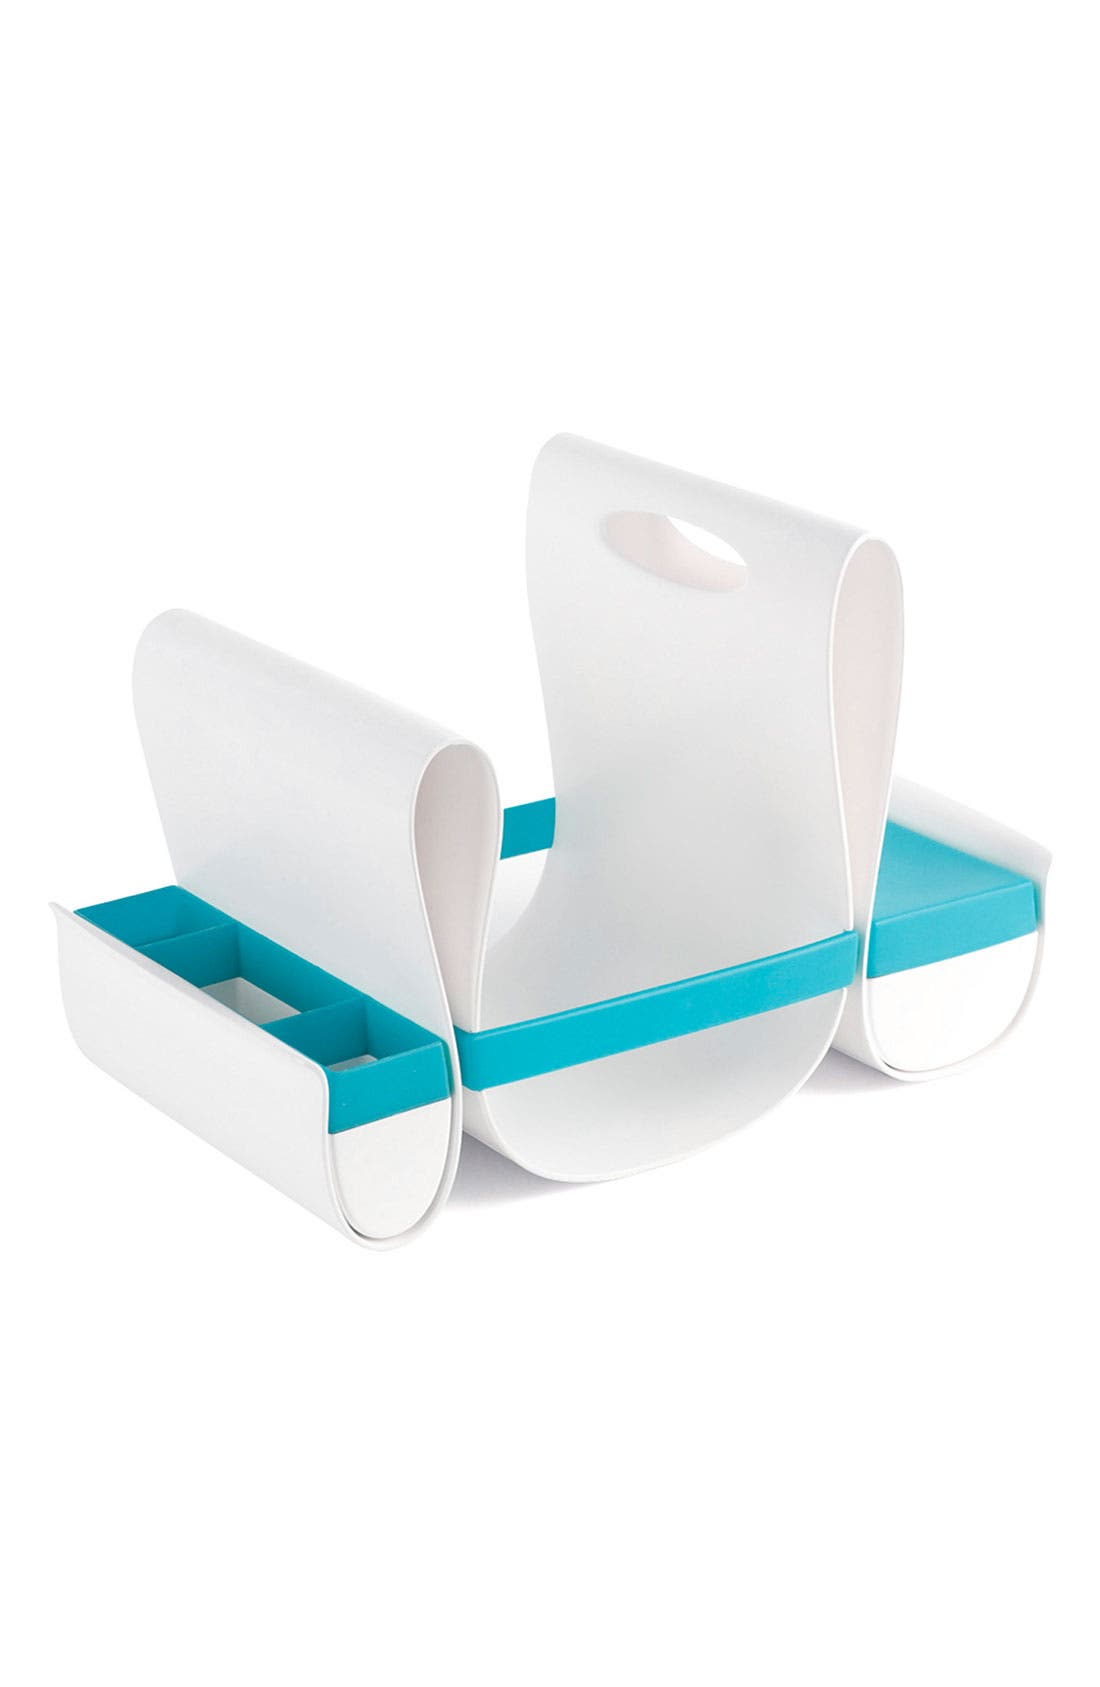 Main Image - Boon 'Loop' Diaper Caddy